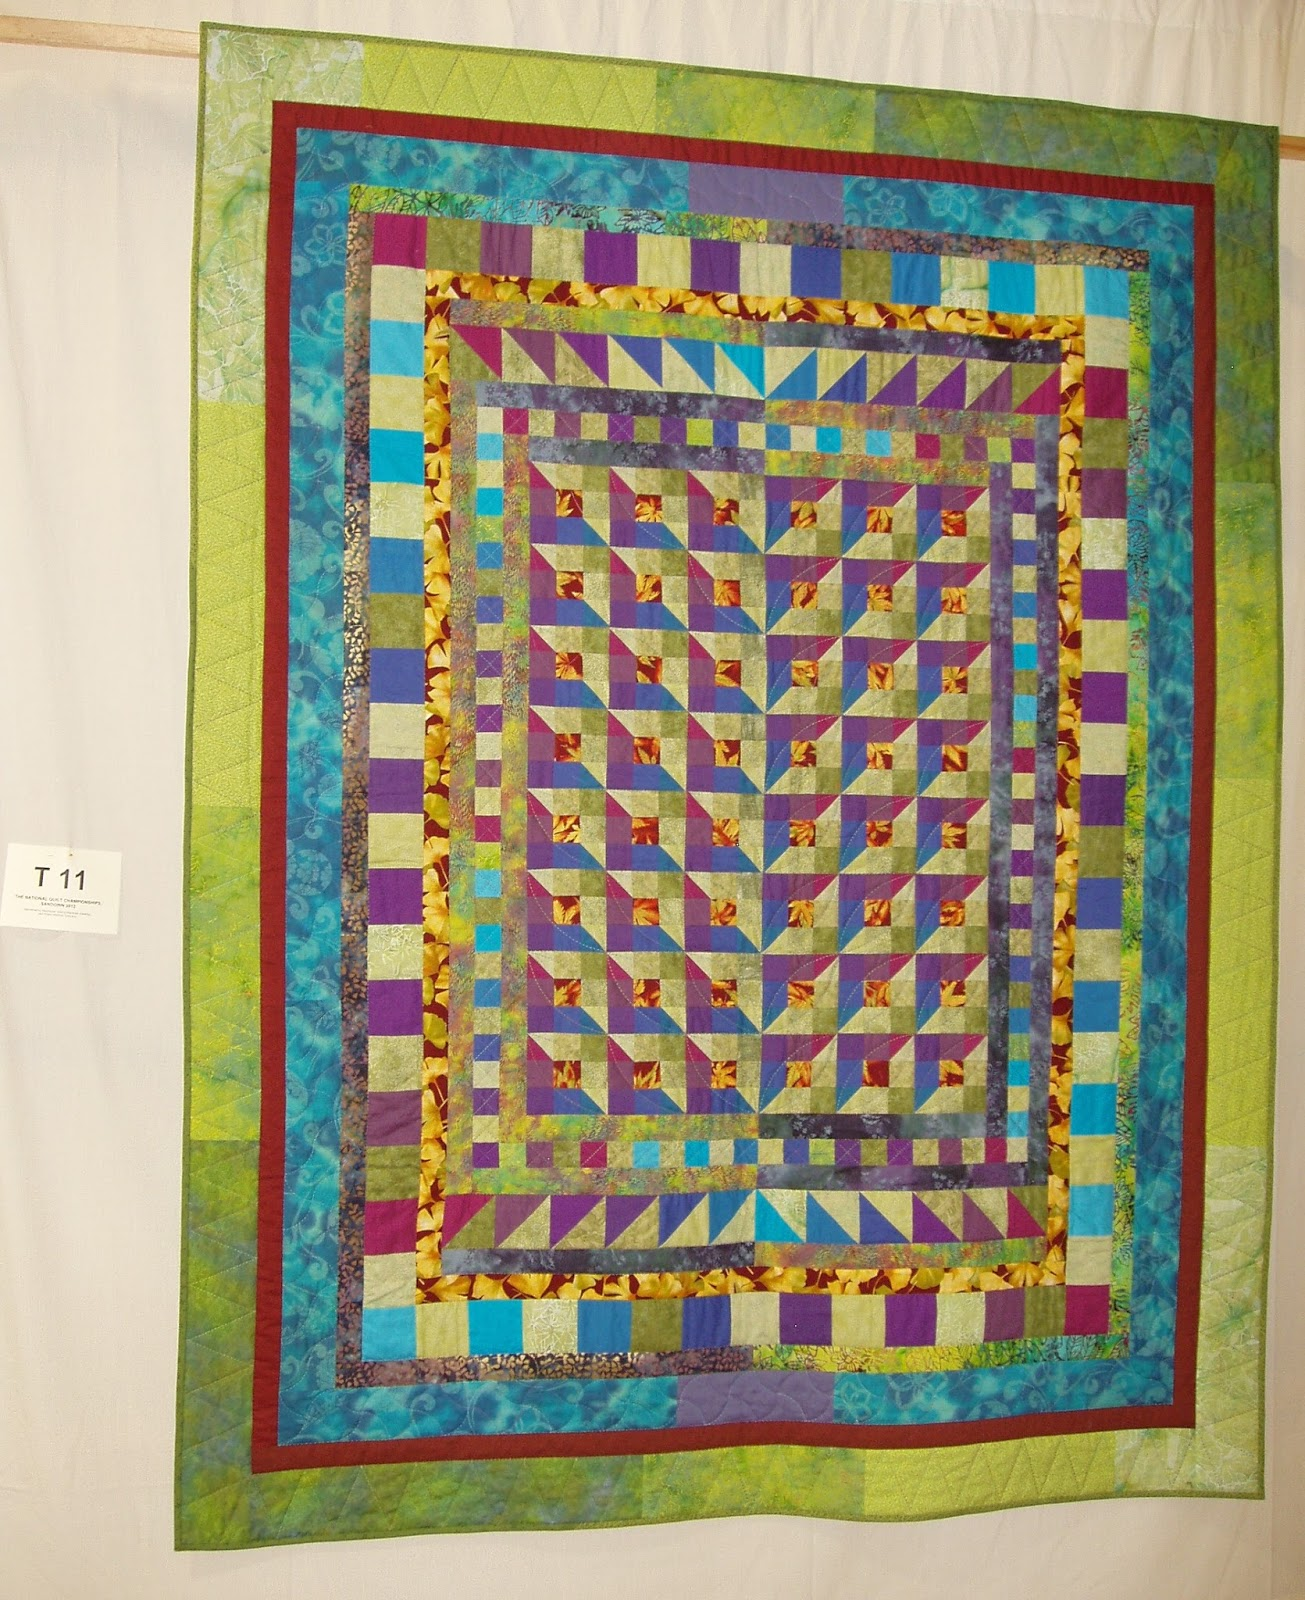 New Quilt Patterns For 2015 : sashiko and other stitching: Another new quilt pattern for the Great Northern Quilt Show...